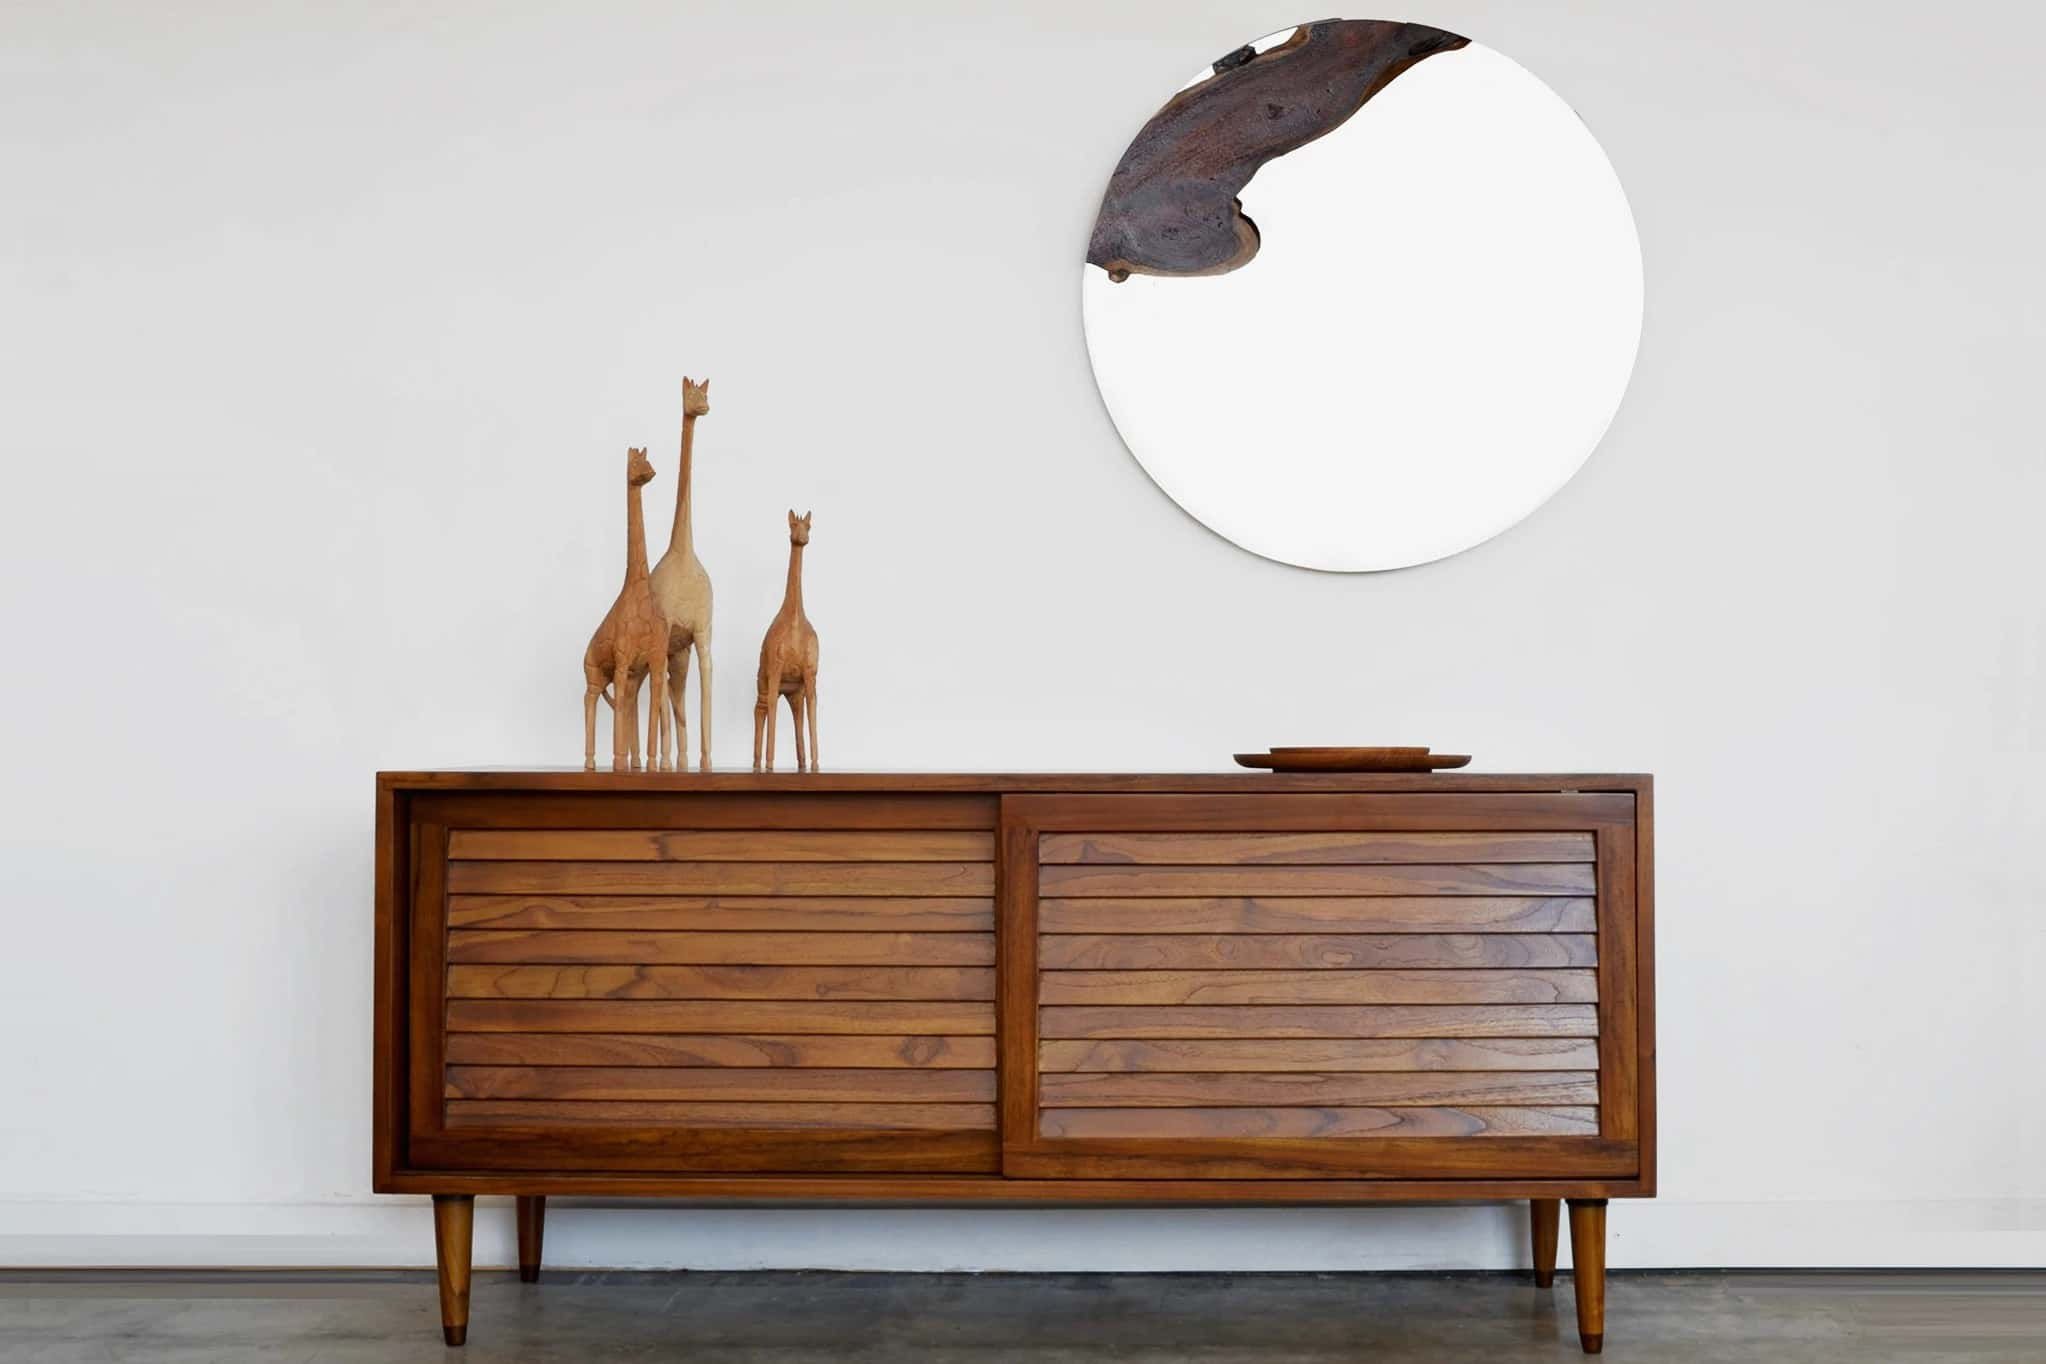 Ciao Small Box - Teak Wood/Tinted Finish by From the Source